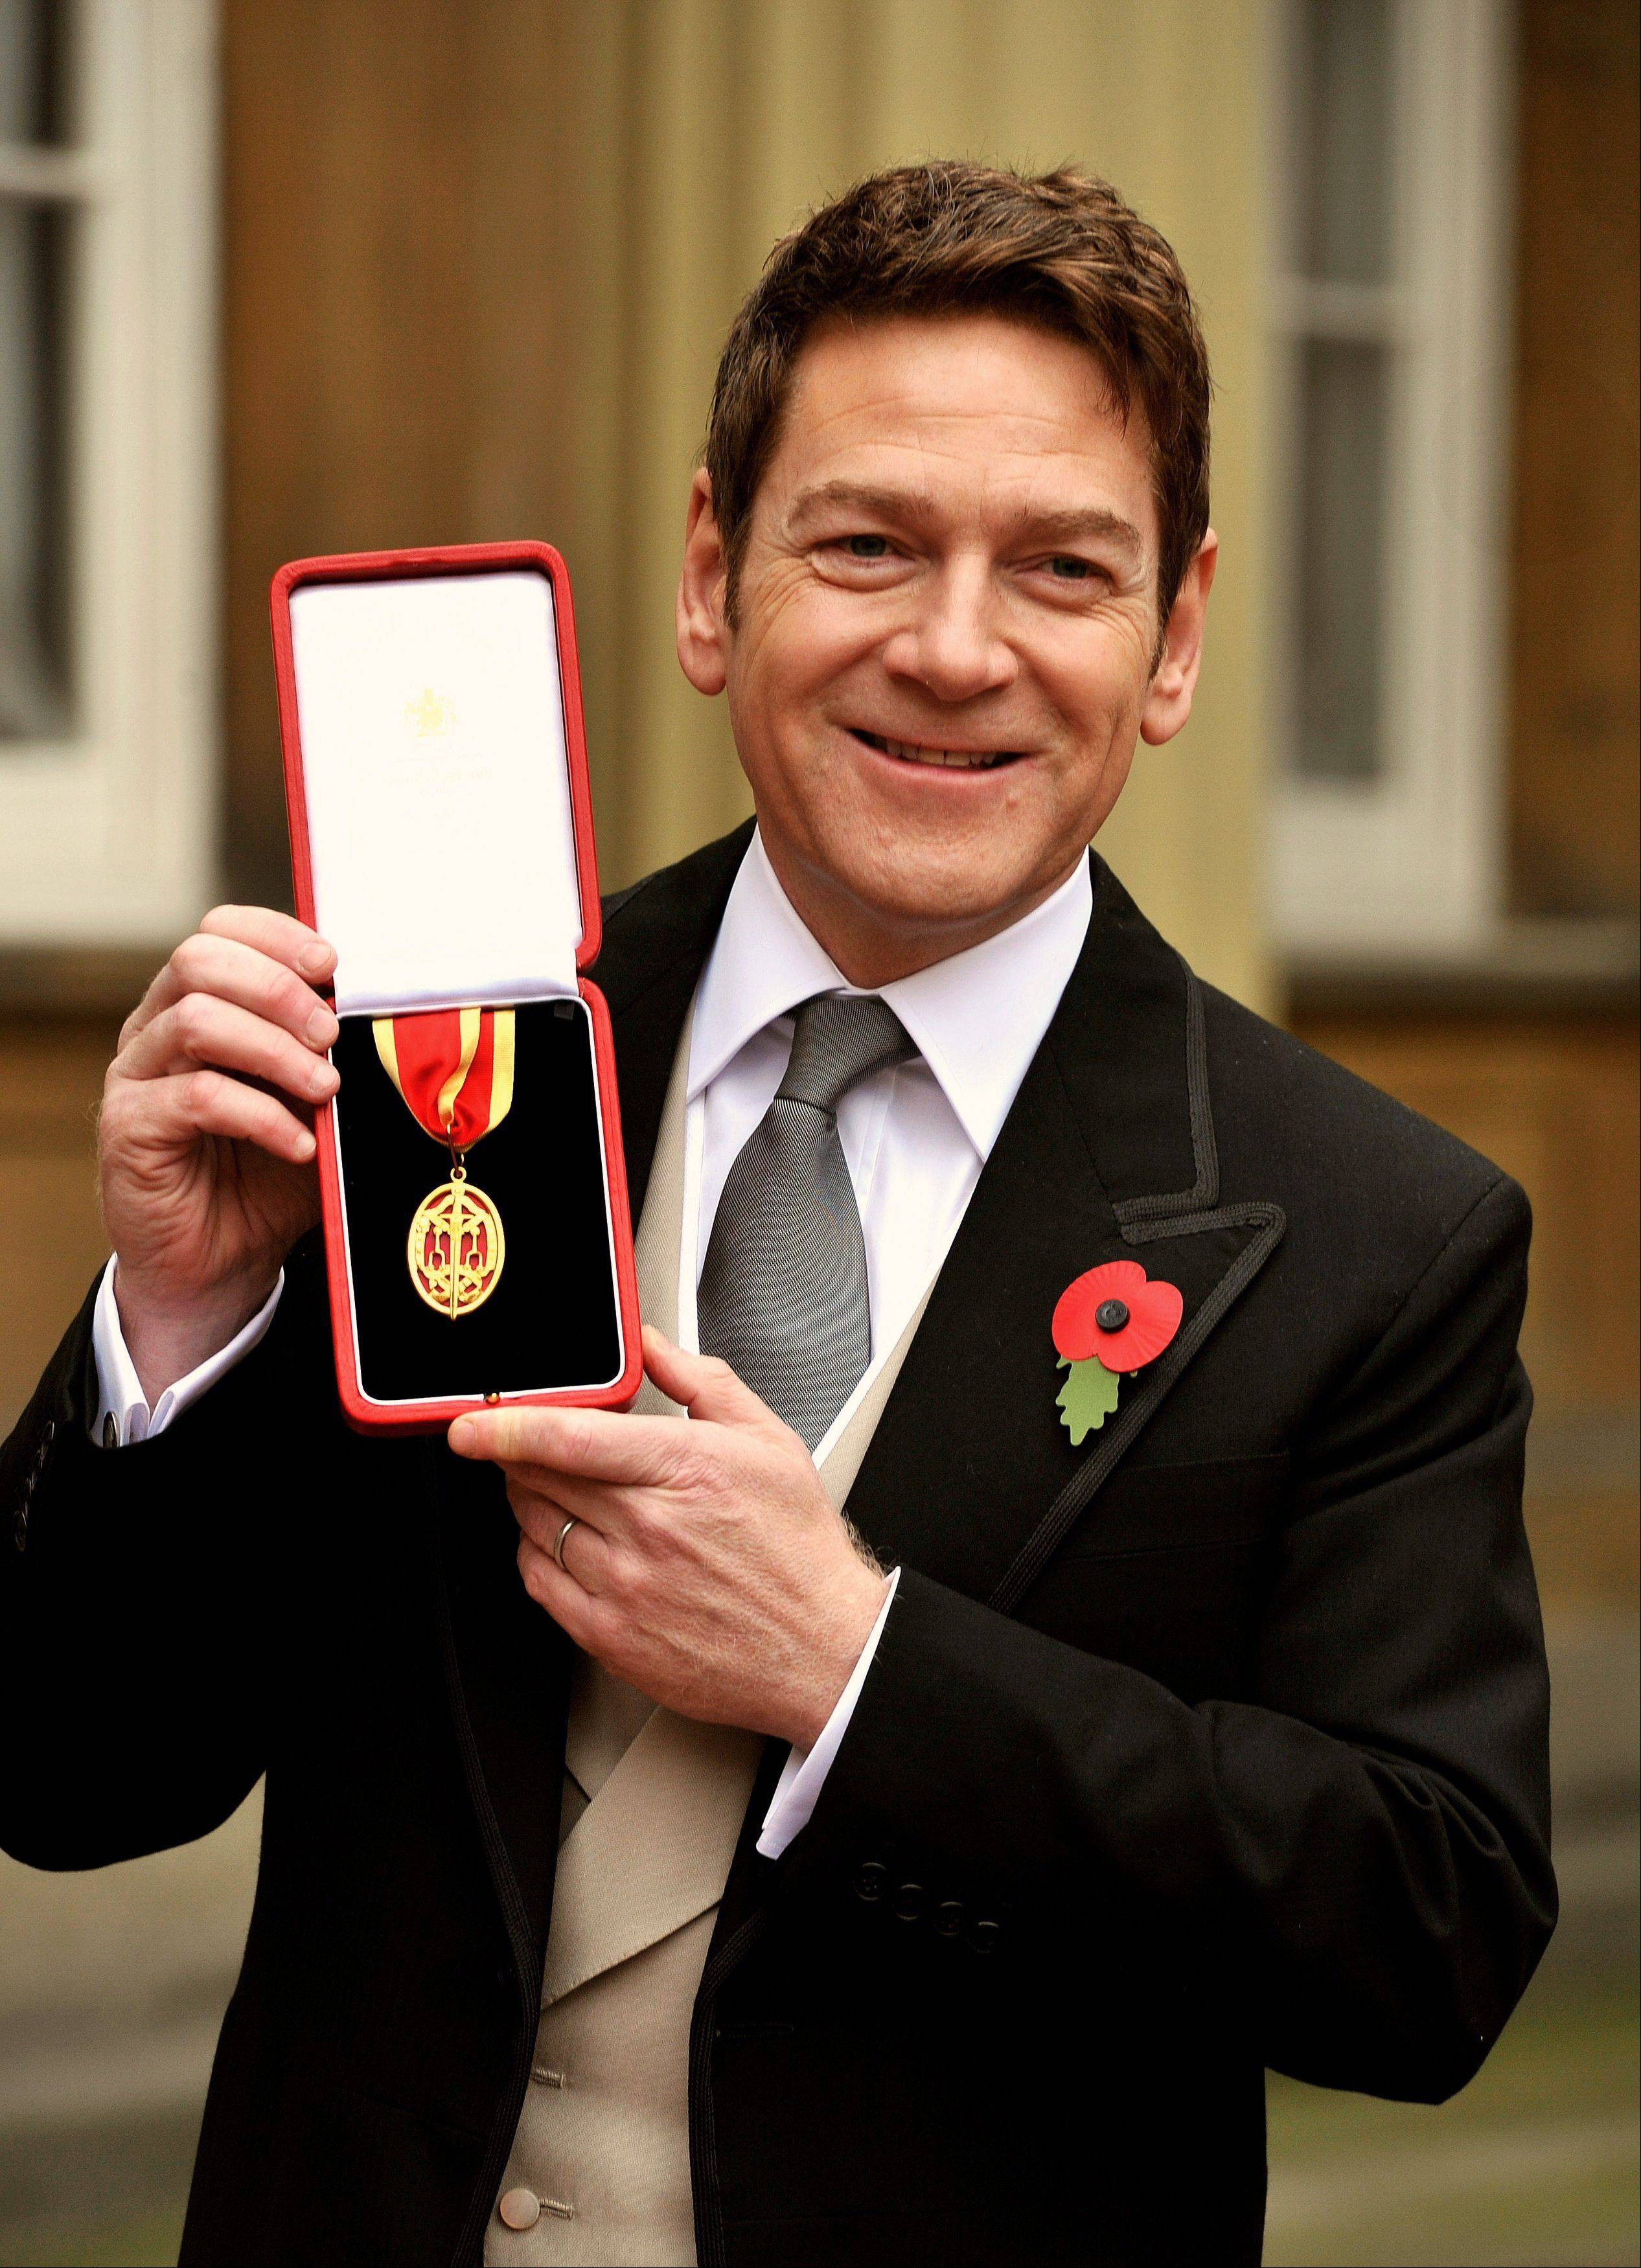 British actor Kenneth Branagh poses with his award after receiving a knighthood from Britain�s Queen Elizabeth II at an investiture ceremony at Buckingham Palace in London Friday.